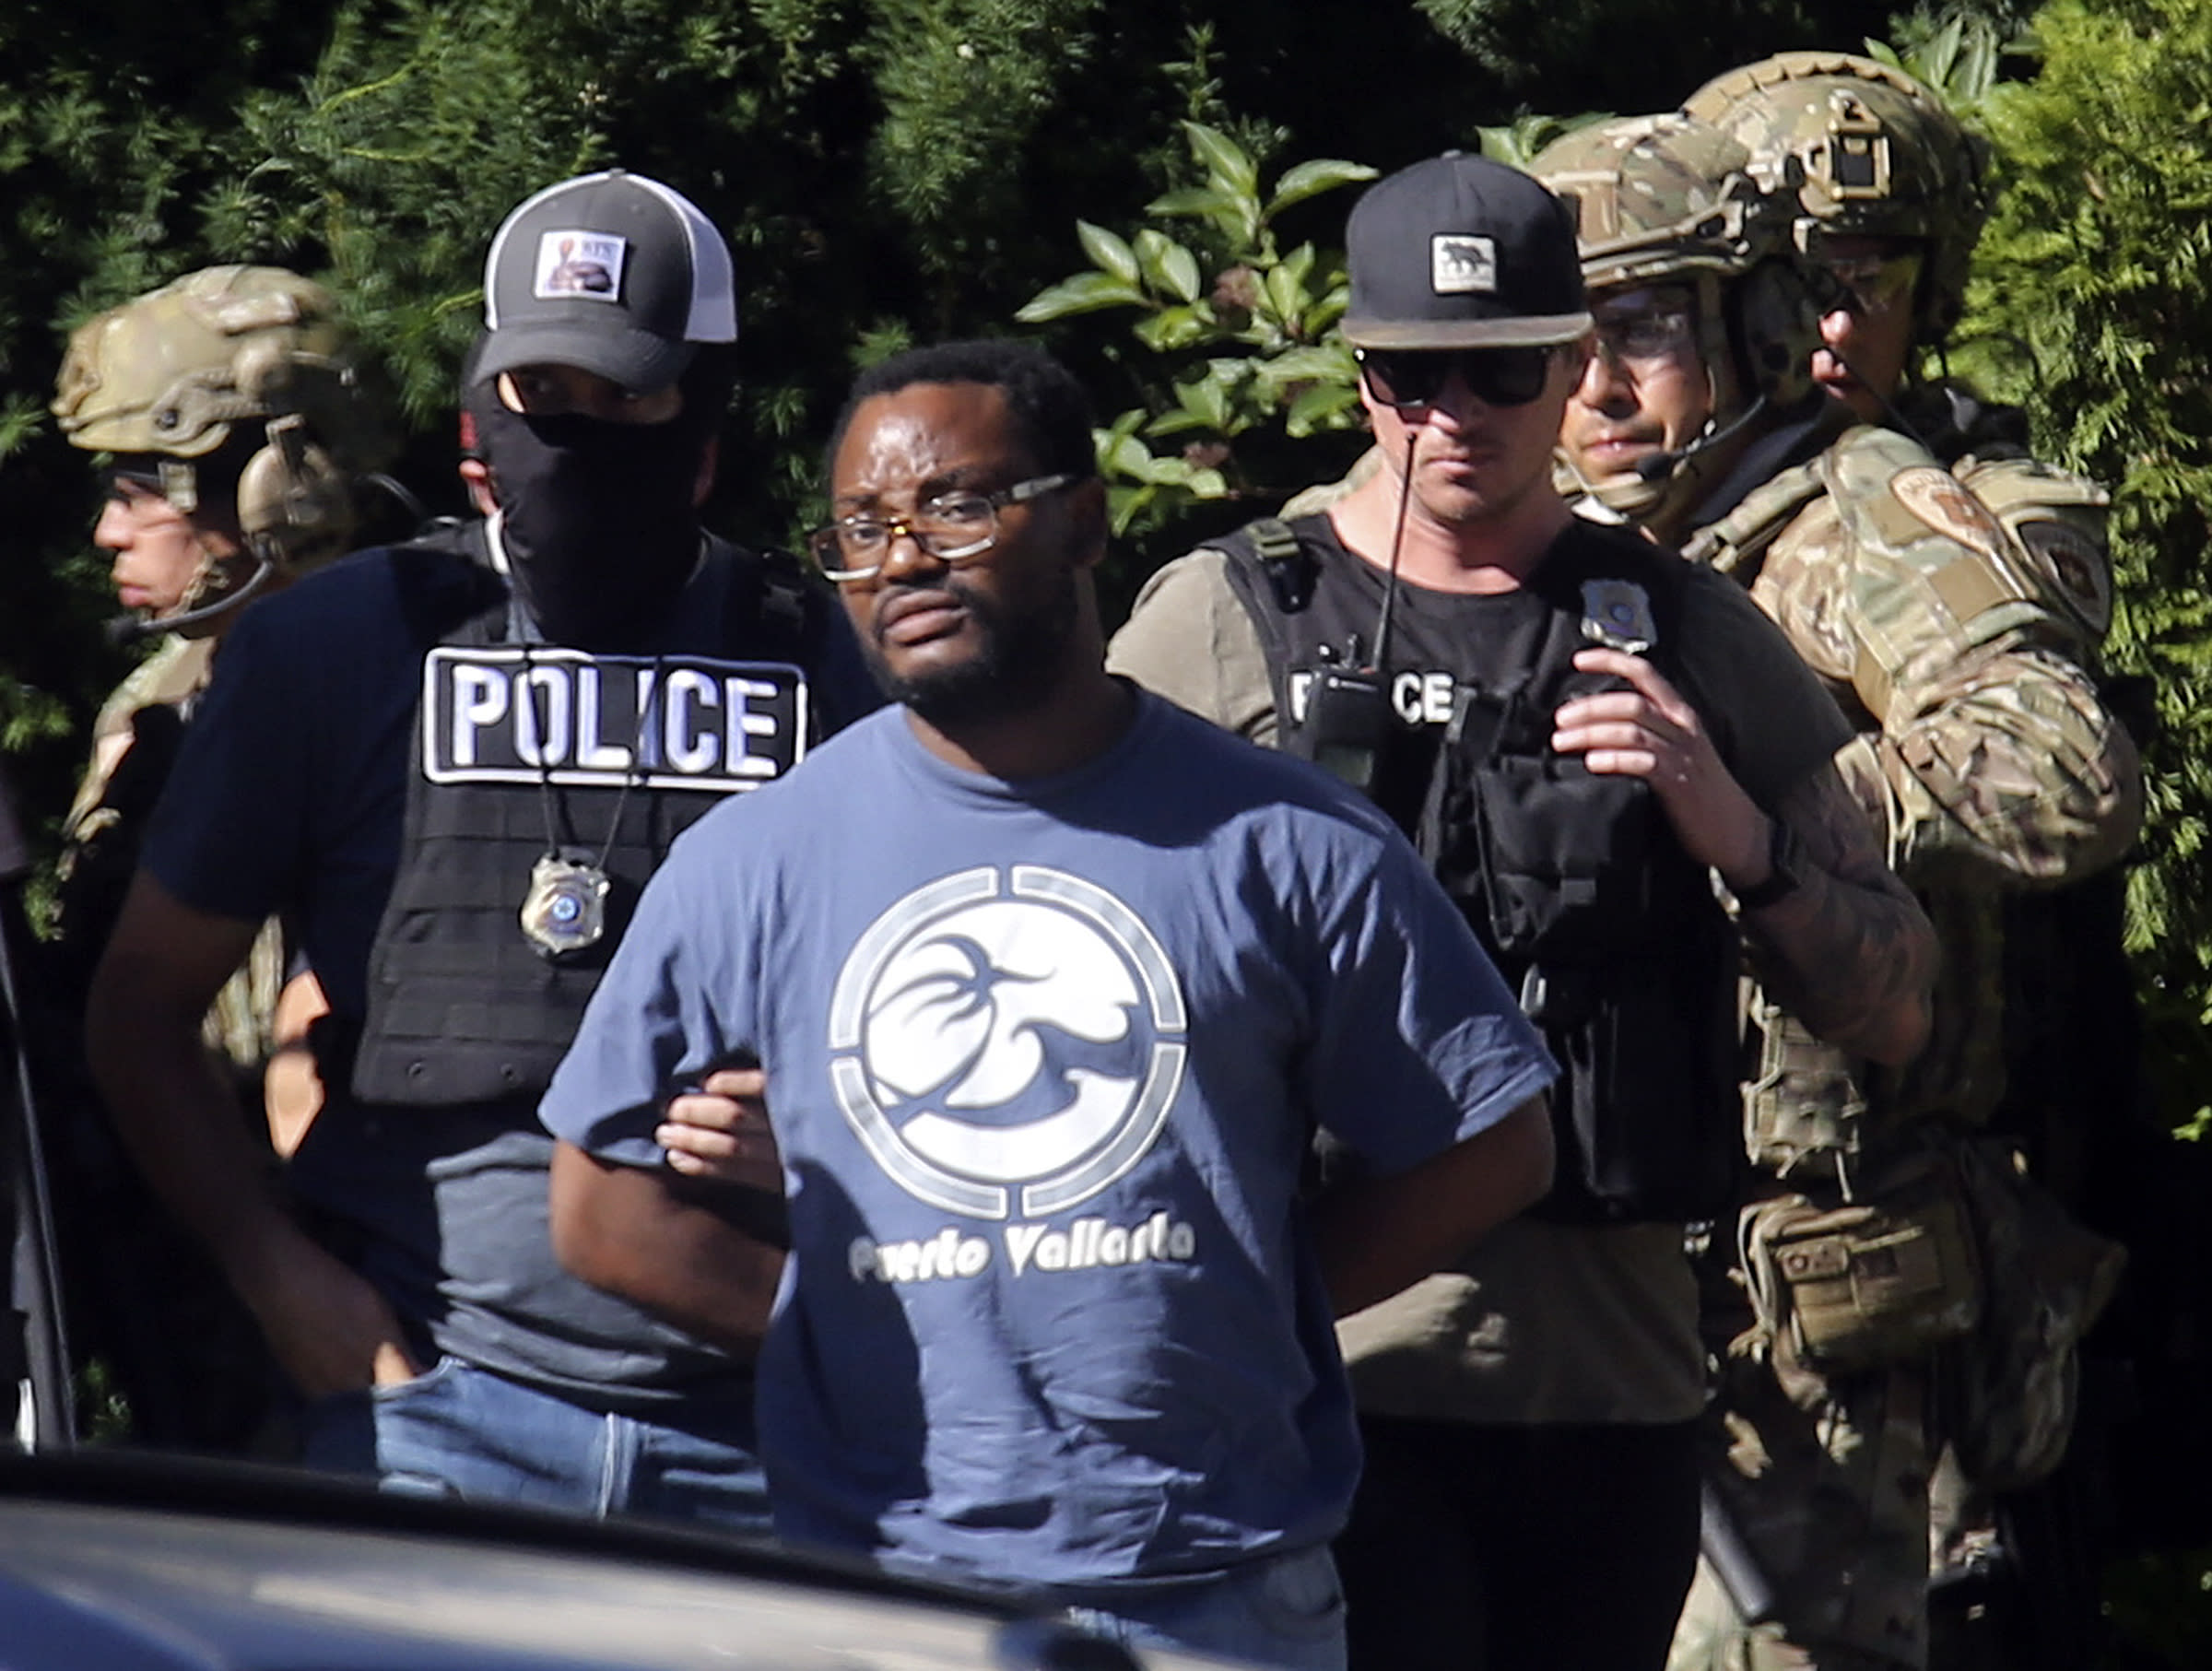 FILE - In this June 28, 2019, file photo, Salt Lake City police take Ayoola A. Ajayi into custody in connection with missing University of Utah student MacKenzie Lueck in Salt Lake City. Ajayi, has been charged with murder, kidnapping and other charges in the death of Lueck. Prosecutors filed the case Wednesday, July 10. District Attorney Sim Gill also said Lueck's cause of death was blunt force trauma to the head, and her body was found with her arms bound behind her. (Kristin Murphy/The Deseret News via AP, File) MANDATORY CREDIT TV OUT